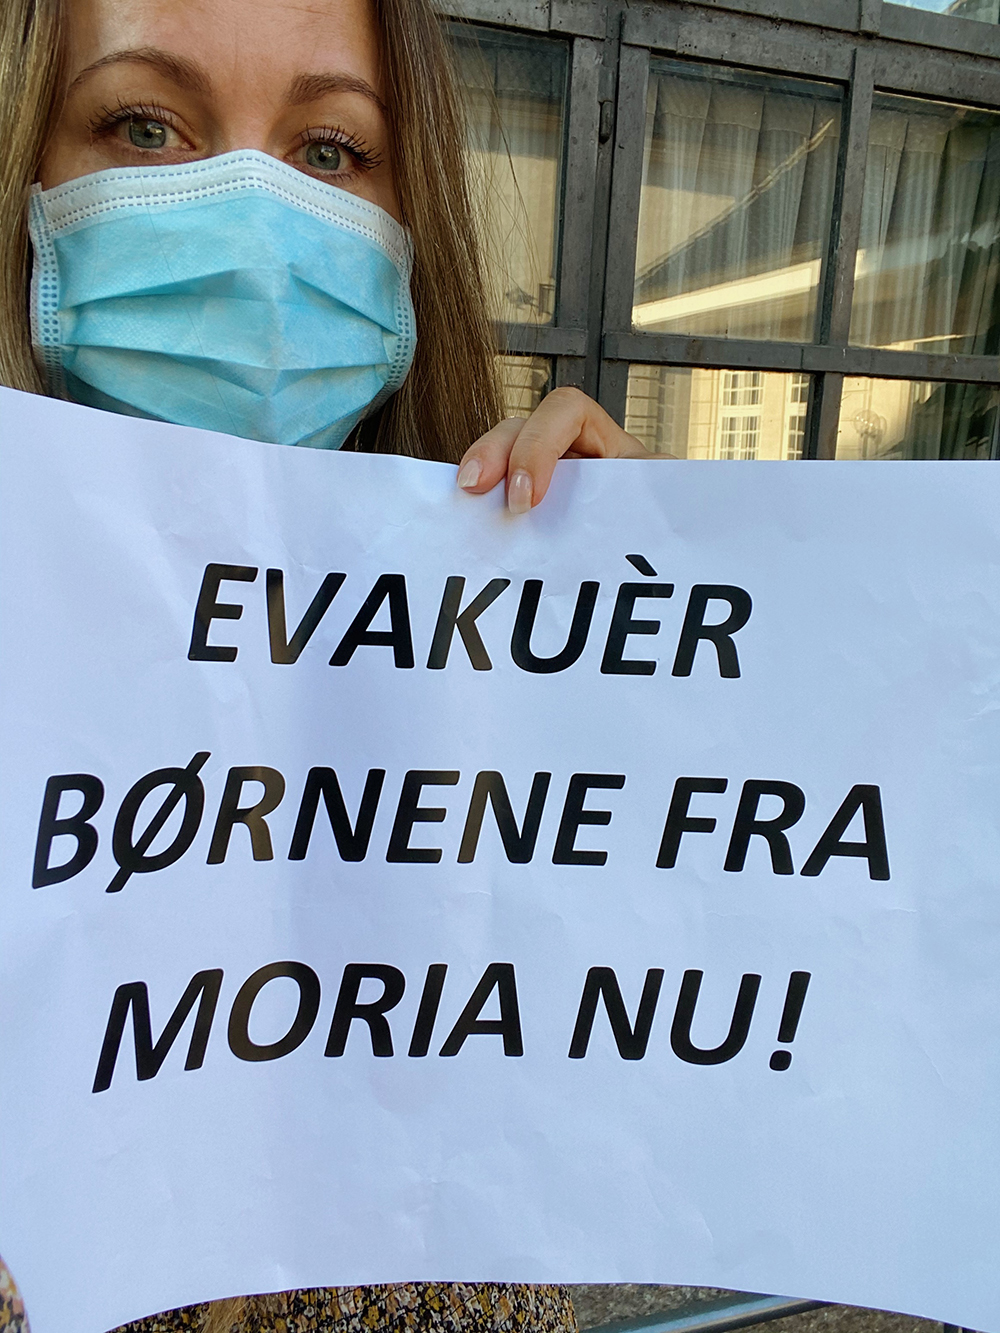 demonstration for børnene i moria